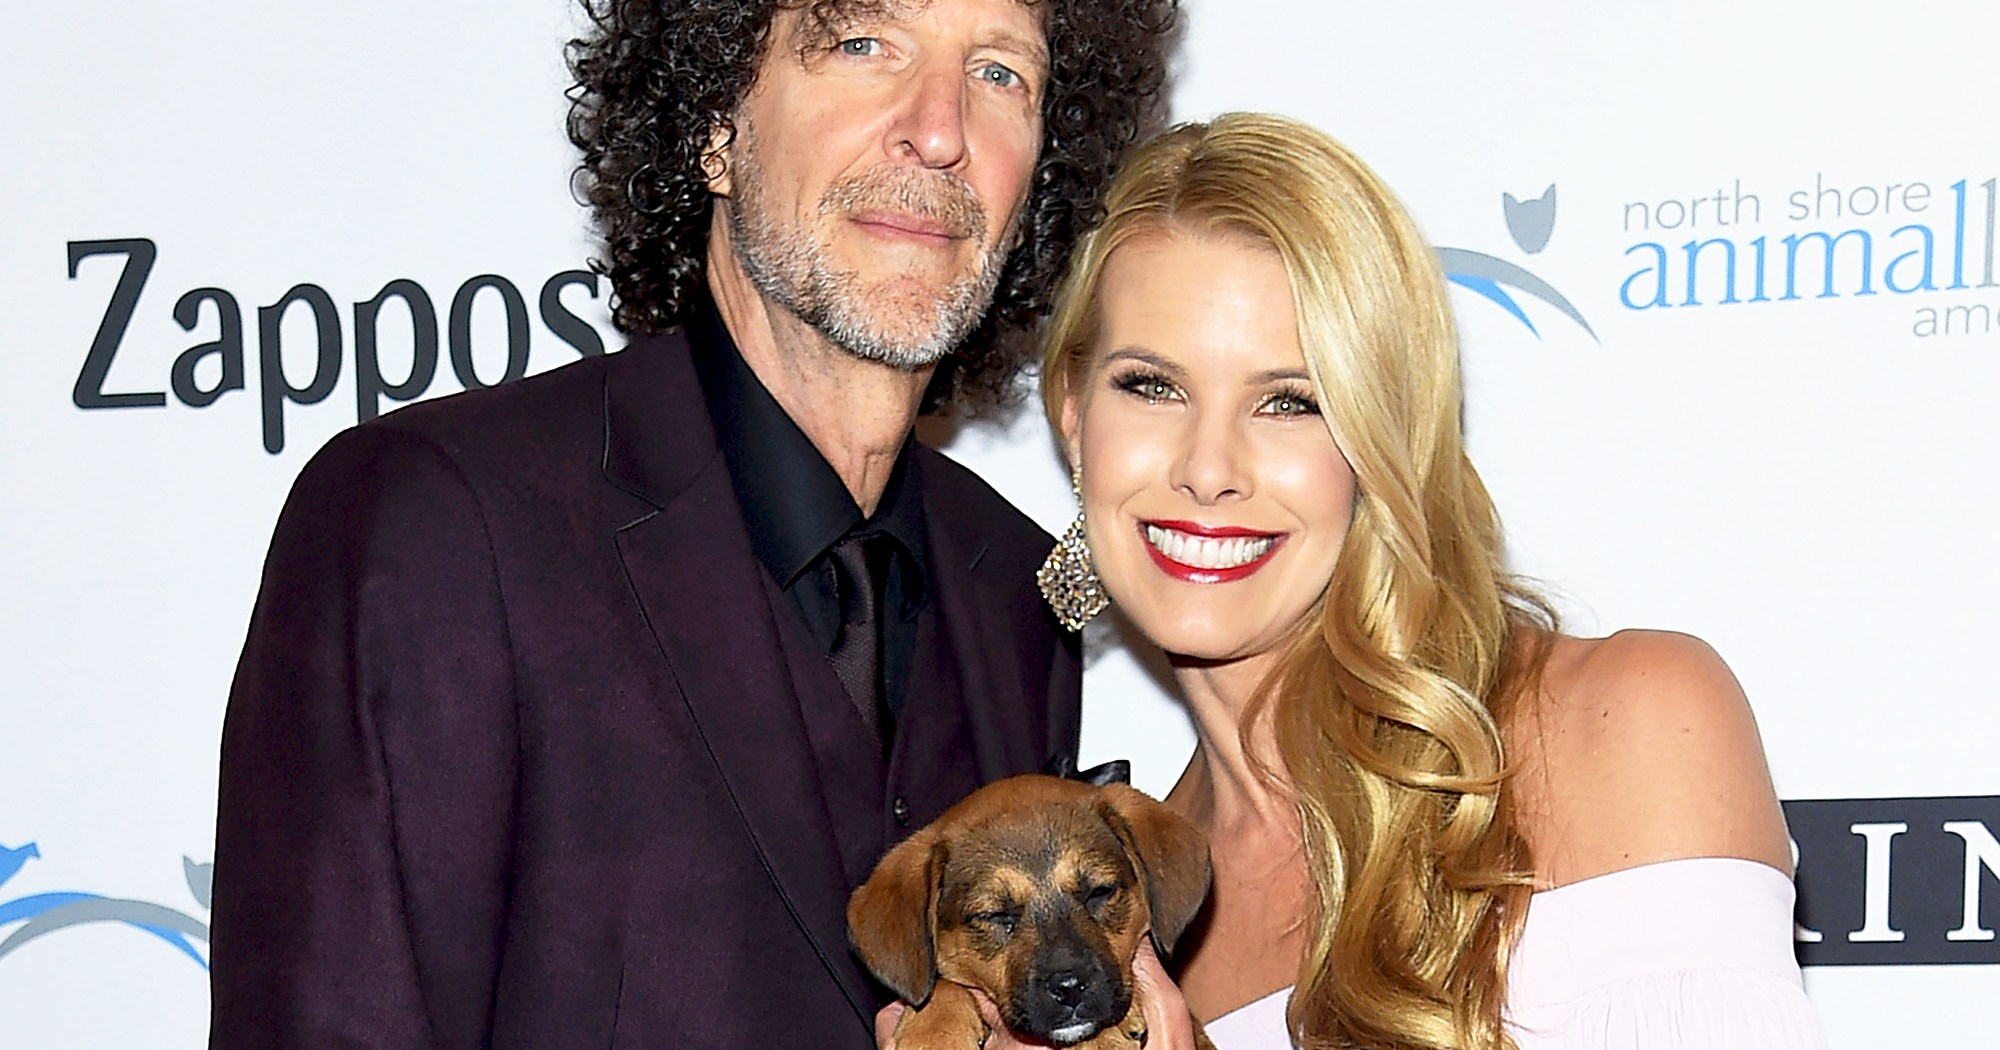 Howard Stern Says Working with Animals Helps His Marriage